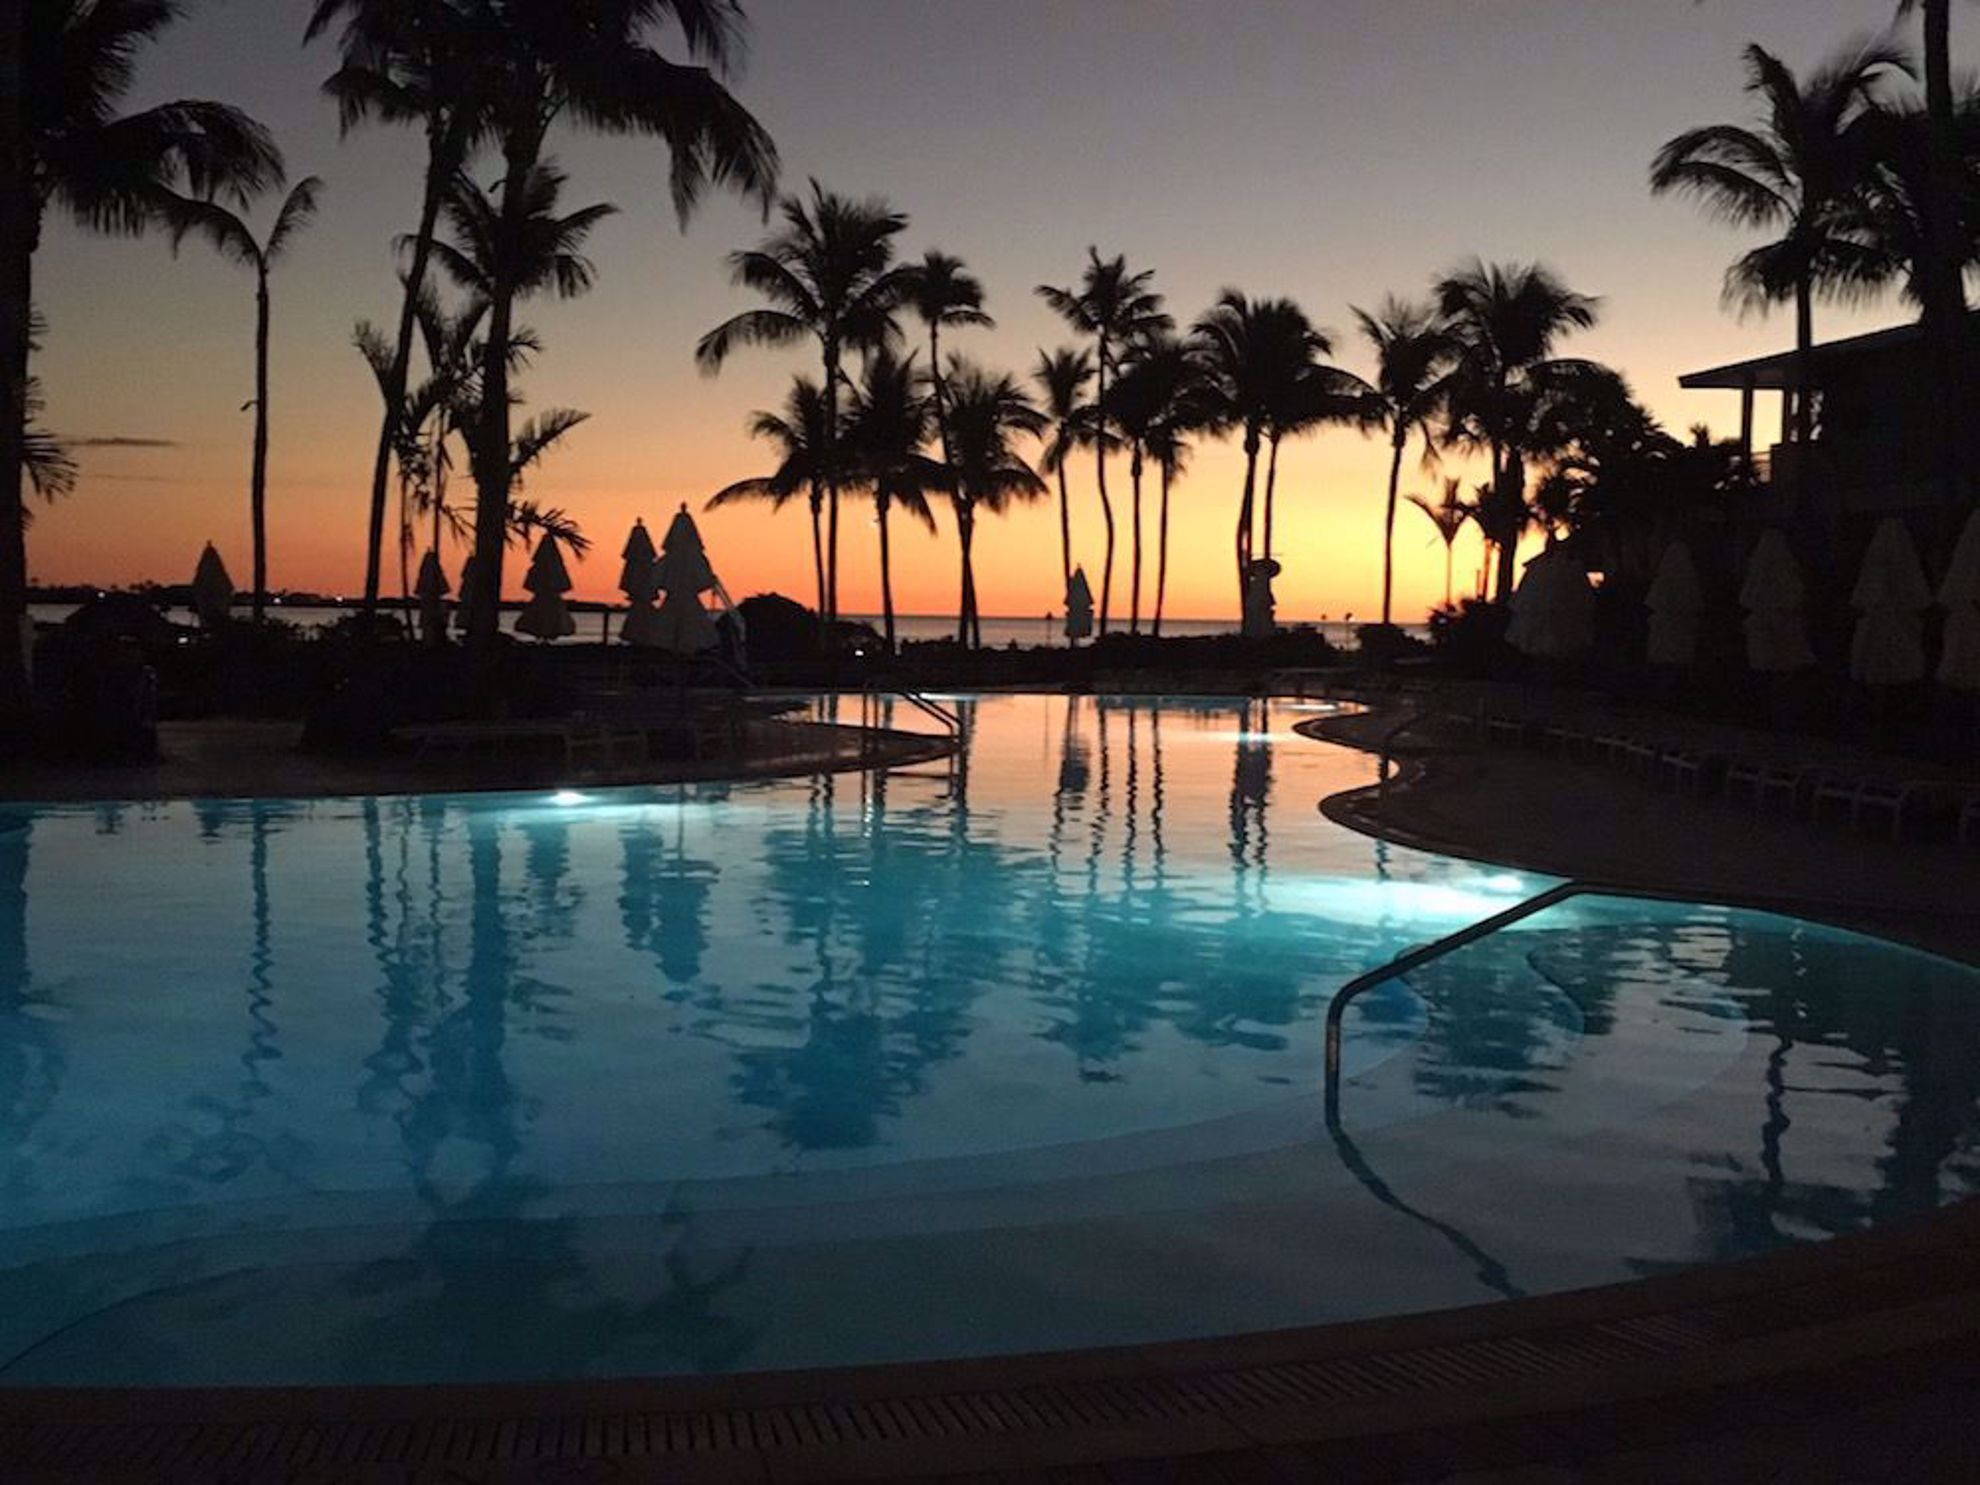 Sunset over pool at Hawks Cay